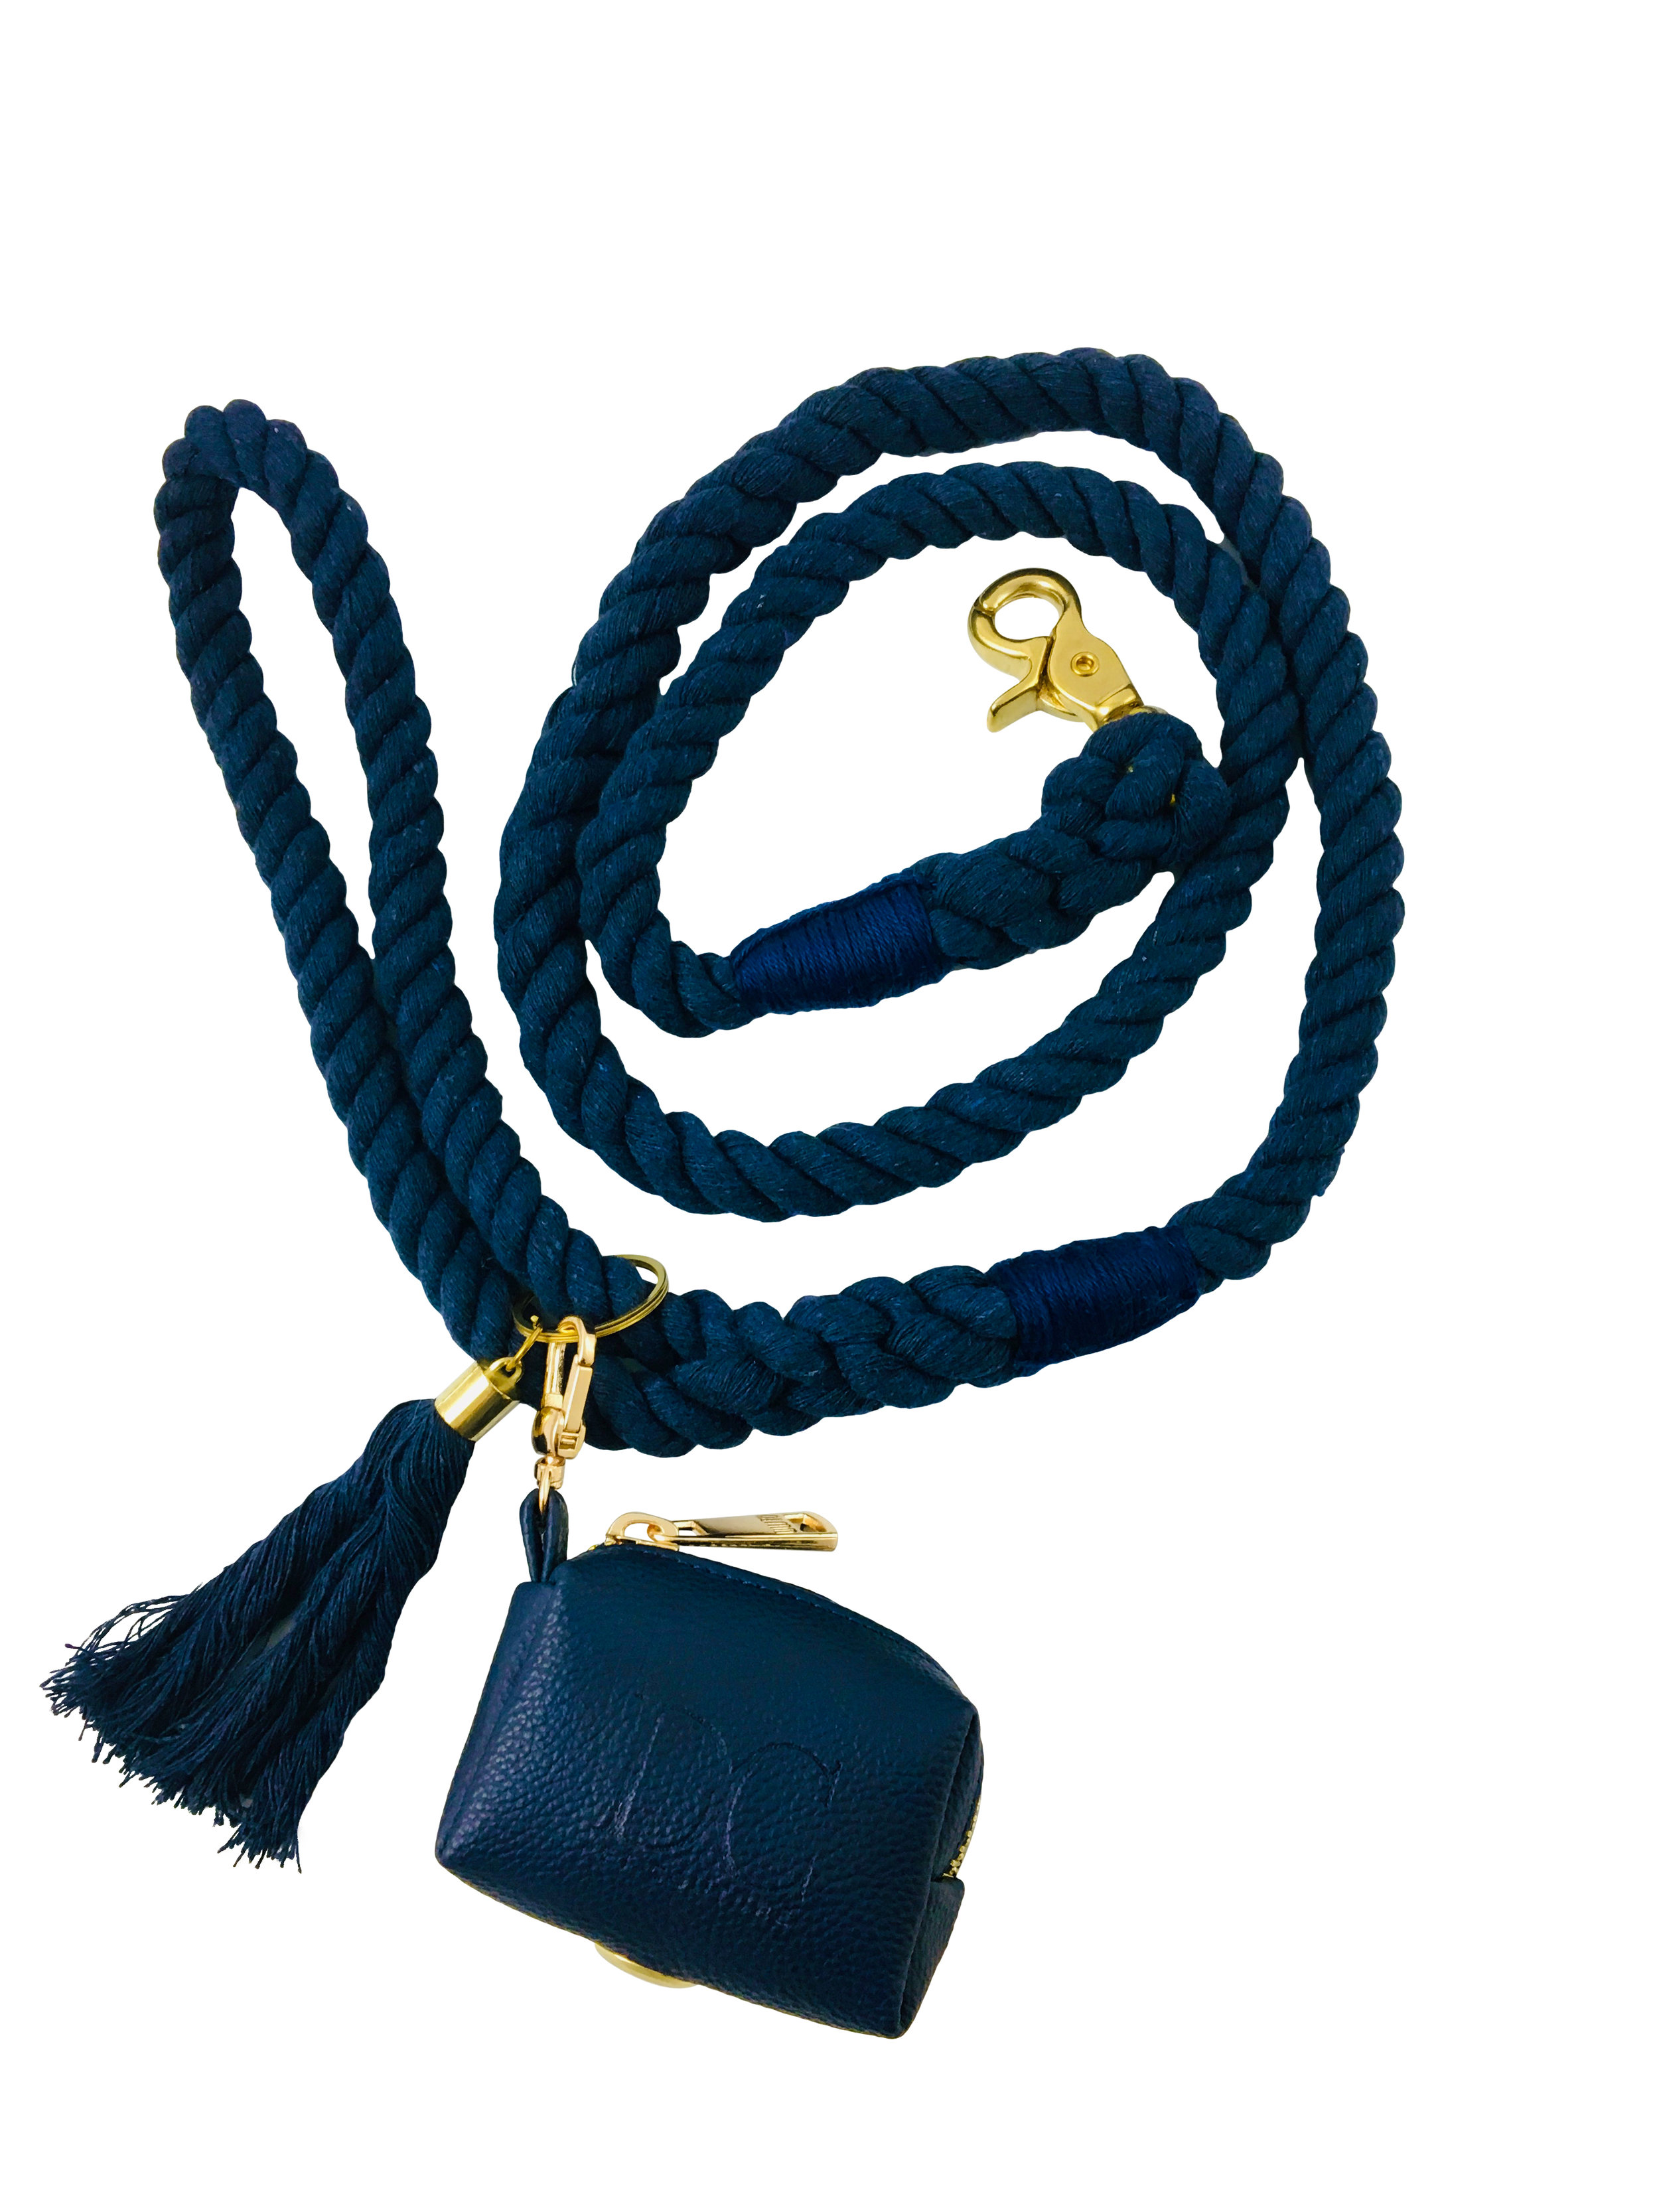 Lead with Poop Purse,Sargasso Sea Blue - With decorative tassel and poop purse